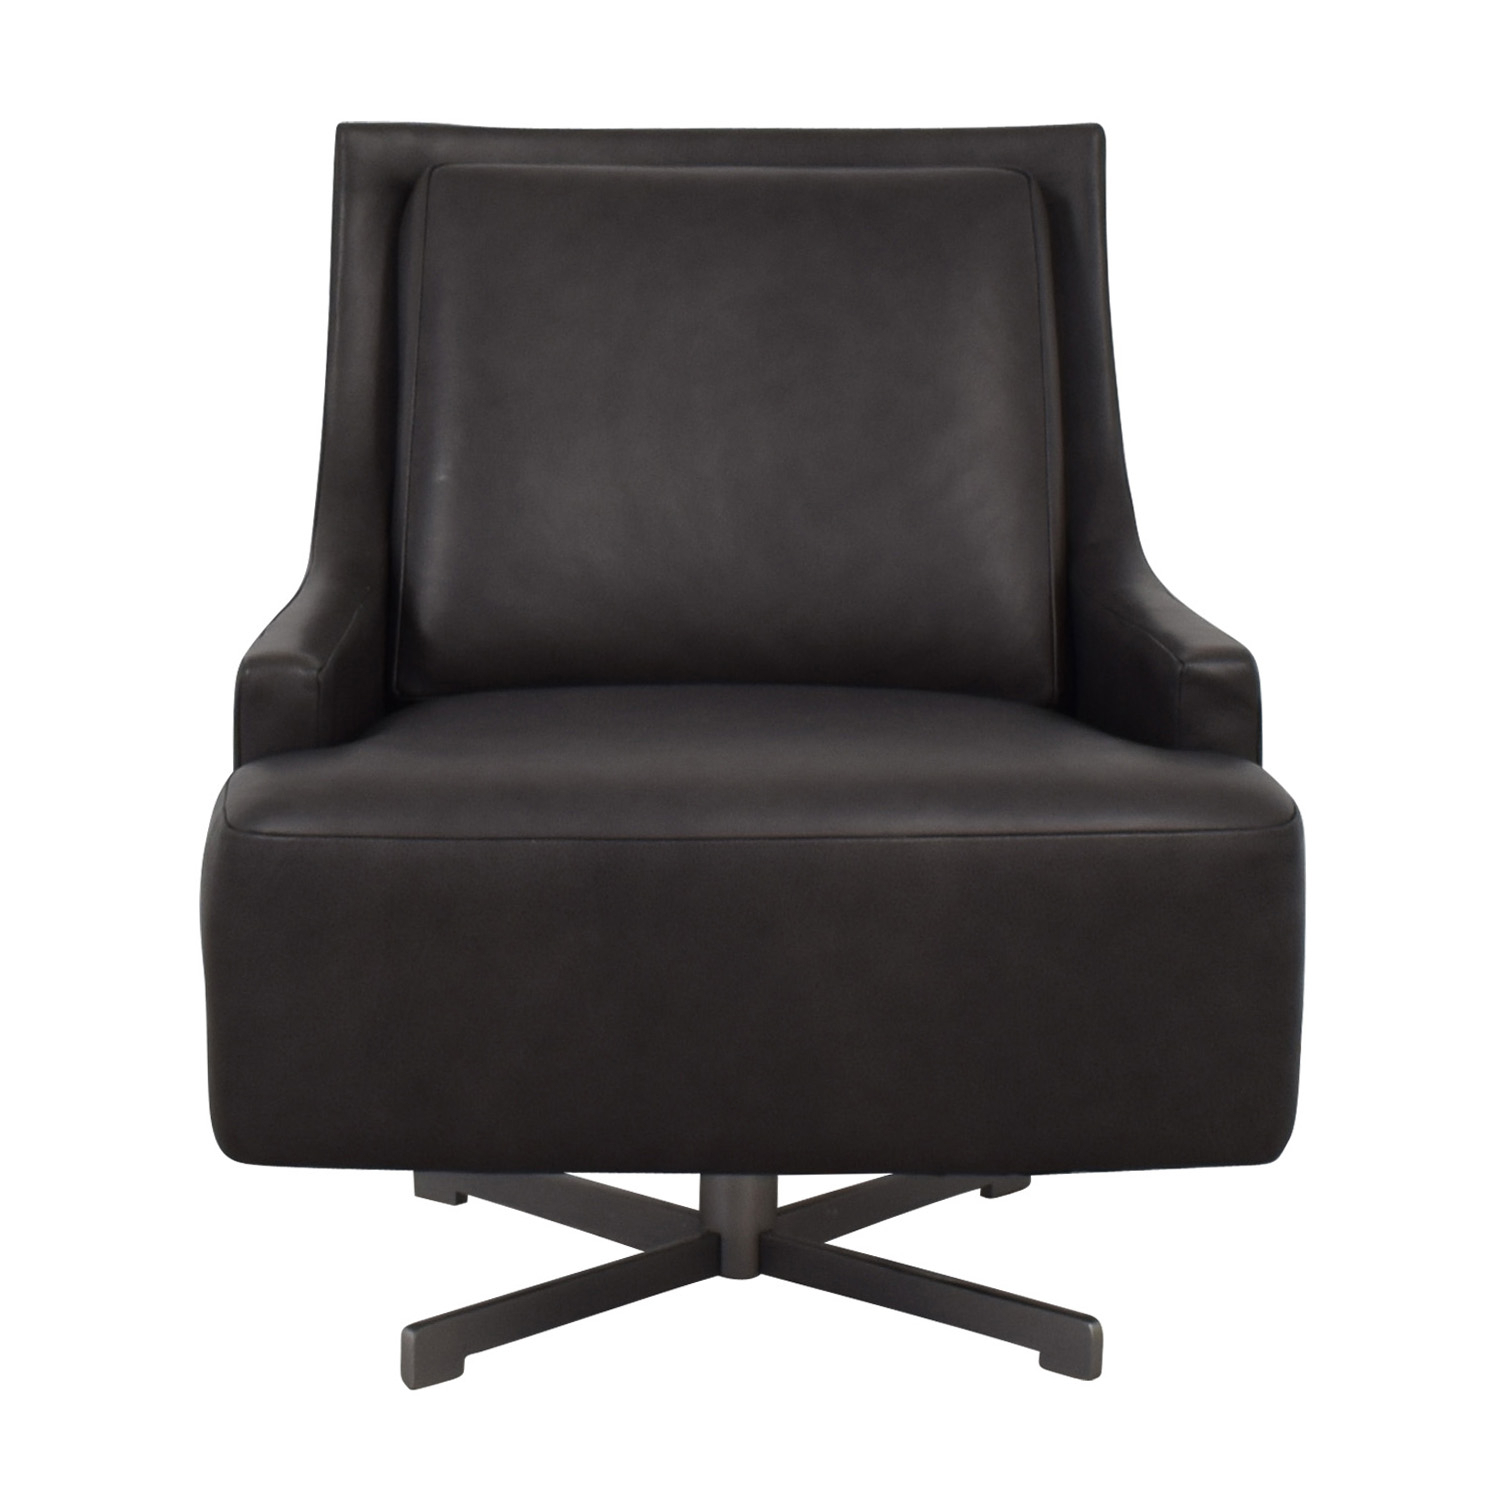 86% Off - Hbf Hbf Dark Grey Swivel Lounge Chair / Chairs with Dark Grey Swivel Chairs